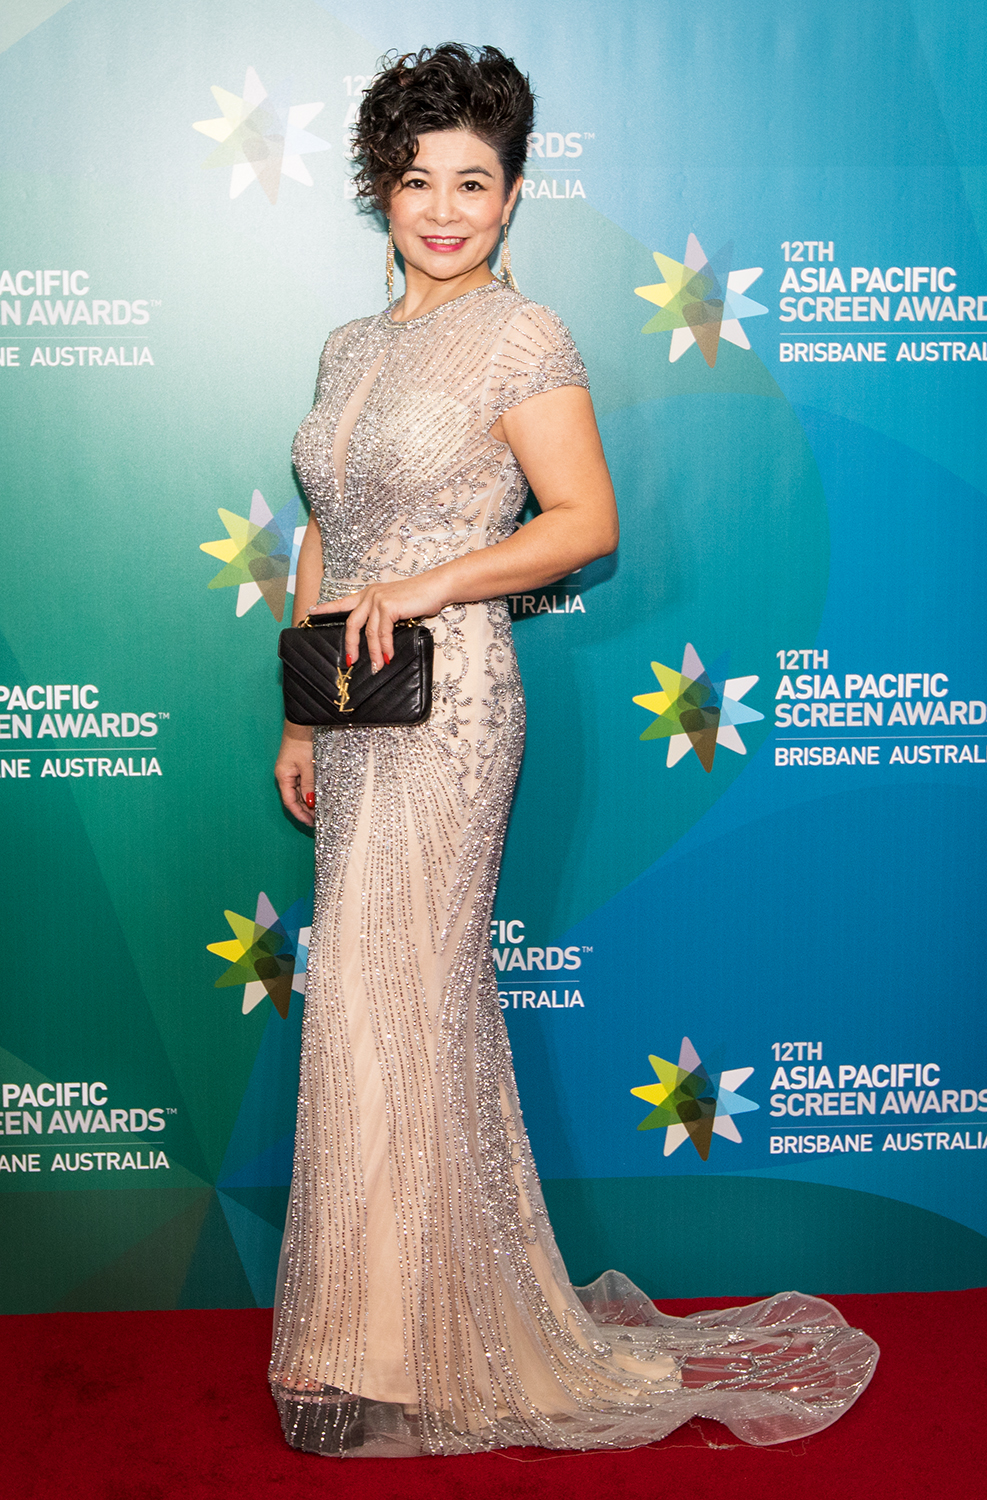 Elegant Silver Evening dress on the Red Carpet of the APSA held at the Brisbane Convention and Exhibition Centre